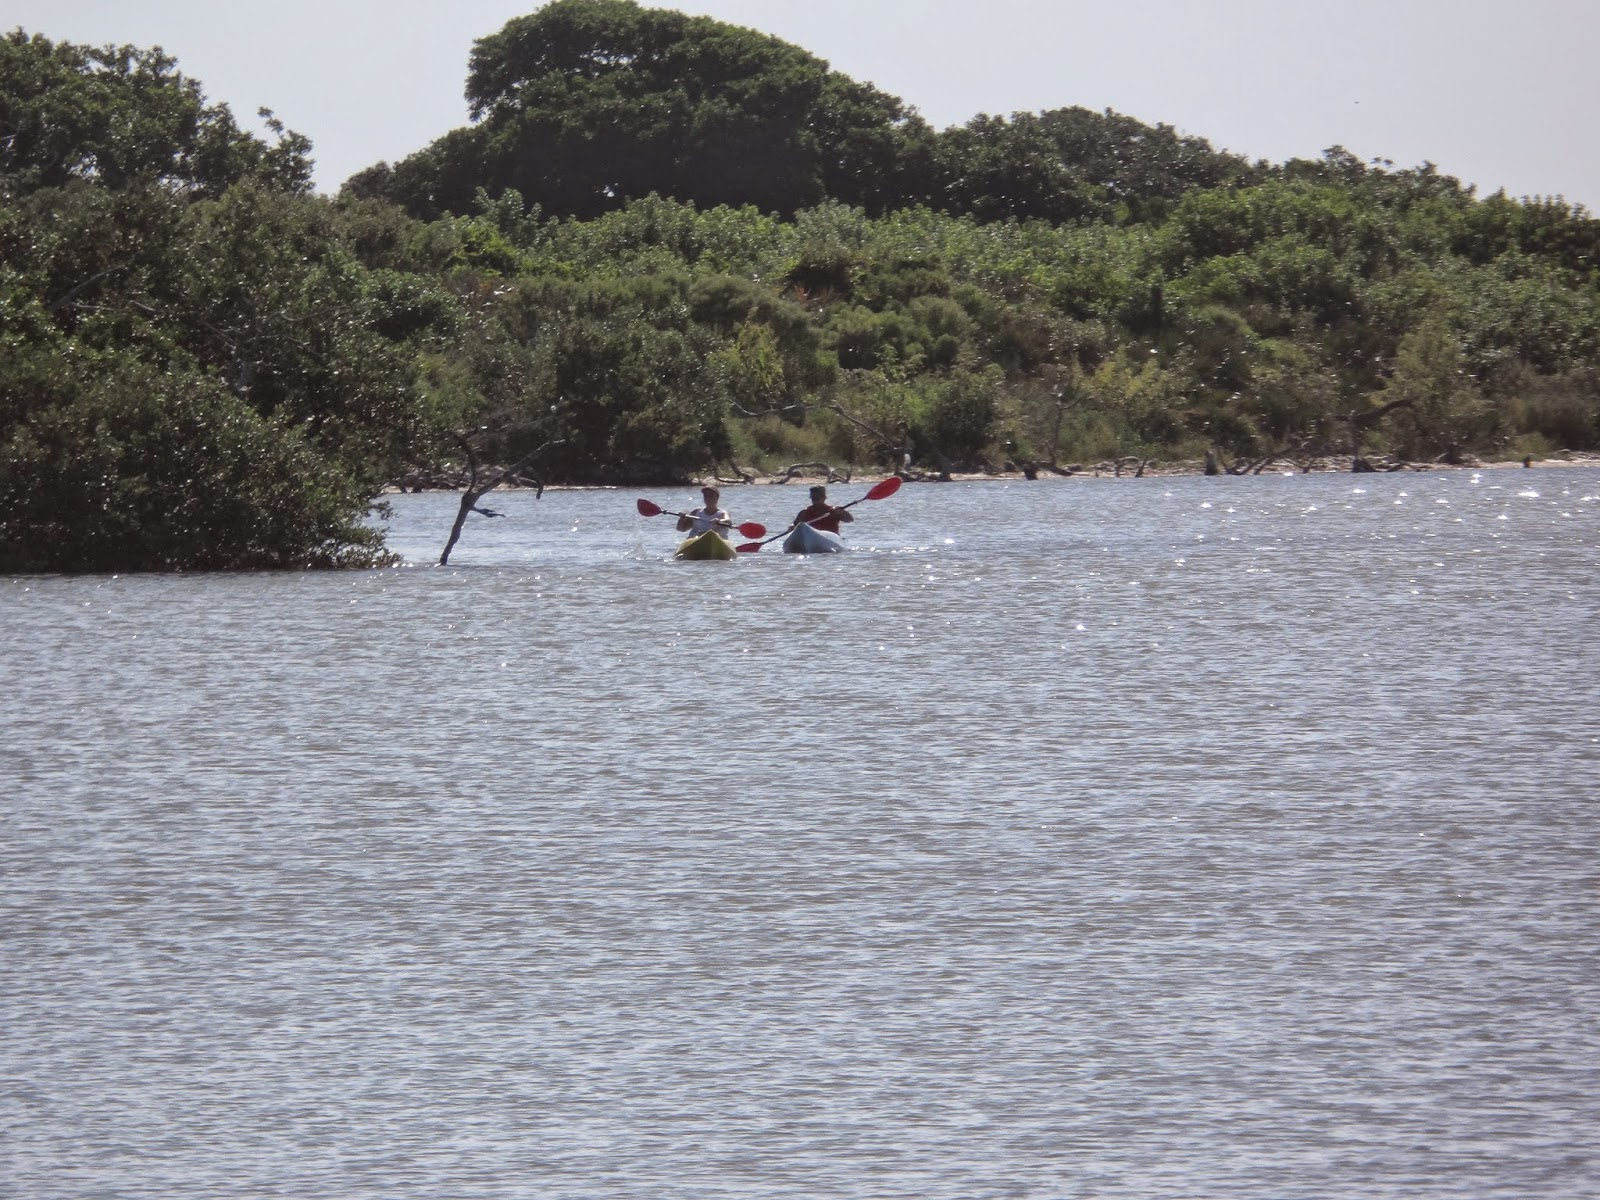 Mosquito lagoon indian river fishing labor day scouting for Indian river fishing